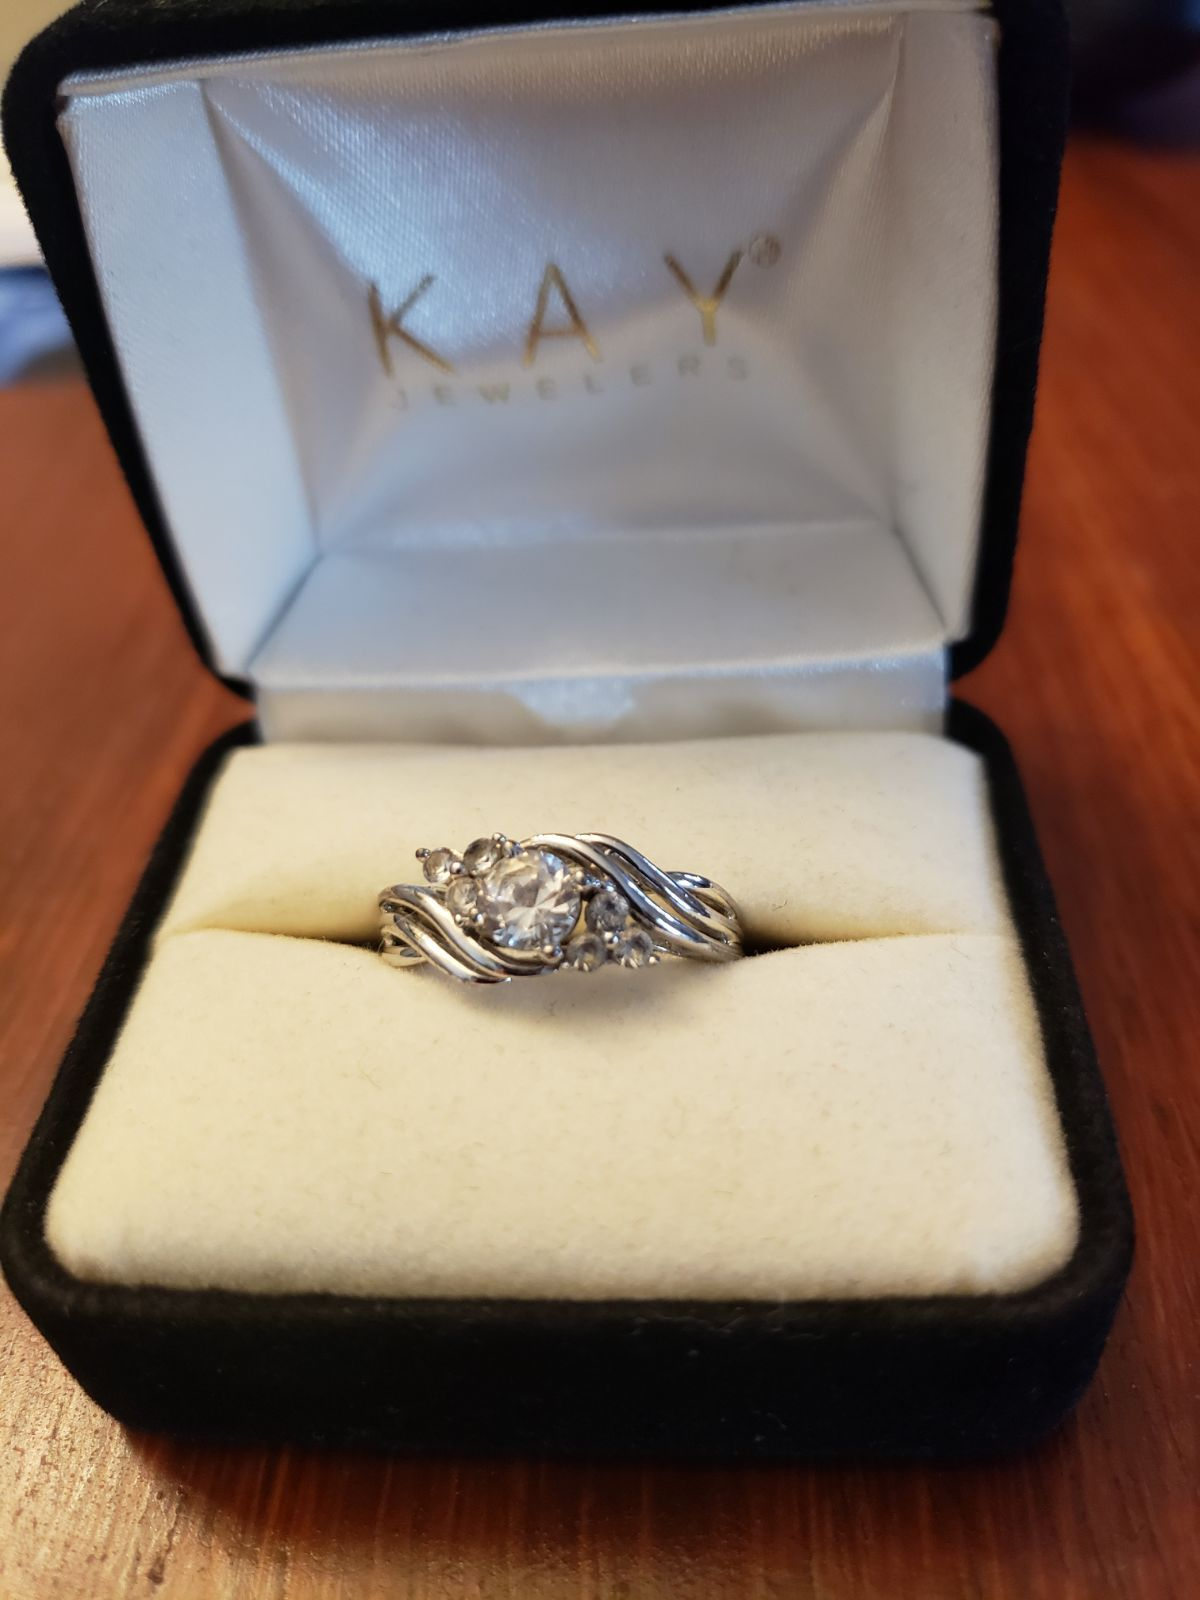 Kay Jewelers Sterling Silver Cubic Zirconia Ring Size 6 In Great Condition I Would Classify It A Kay Jewelers Rings Sterling Silver Cz Rings Kay Jewelers